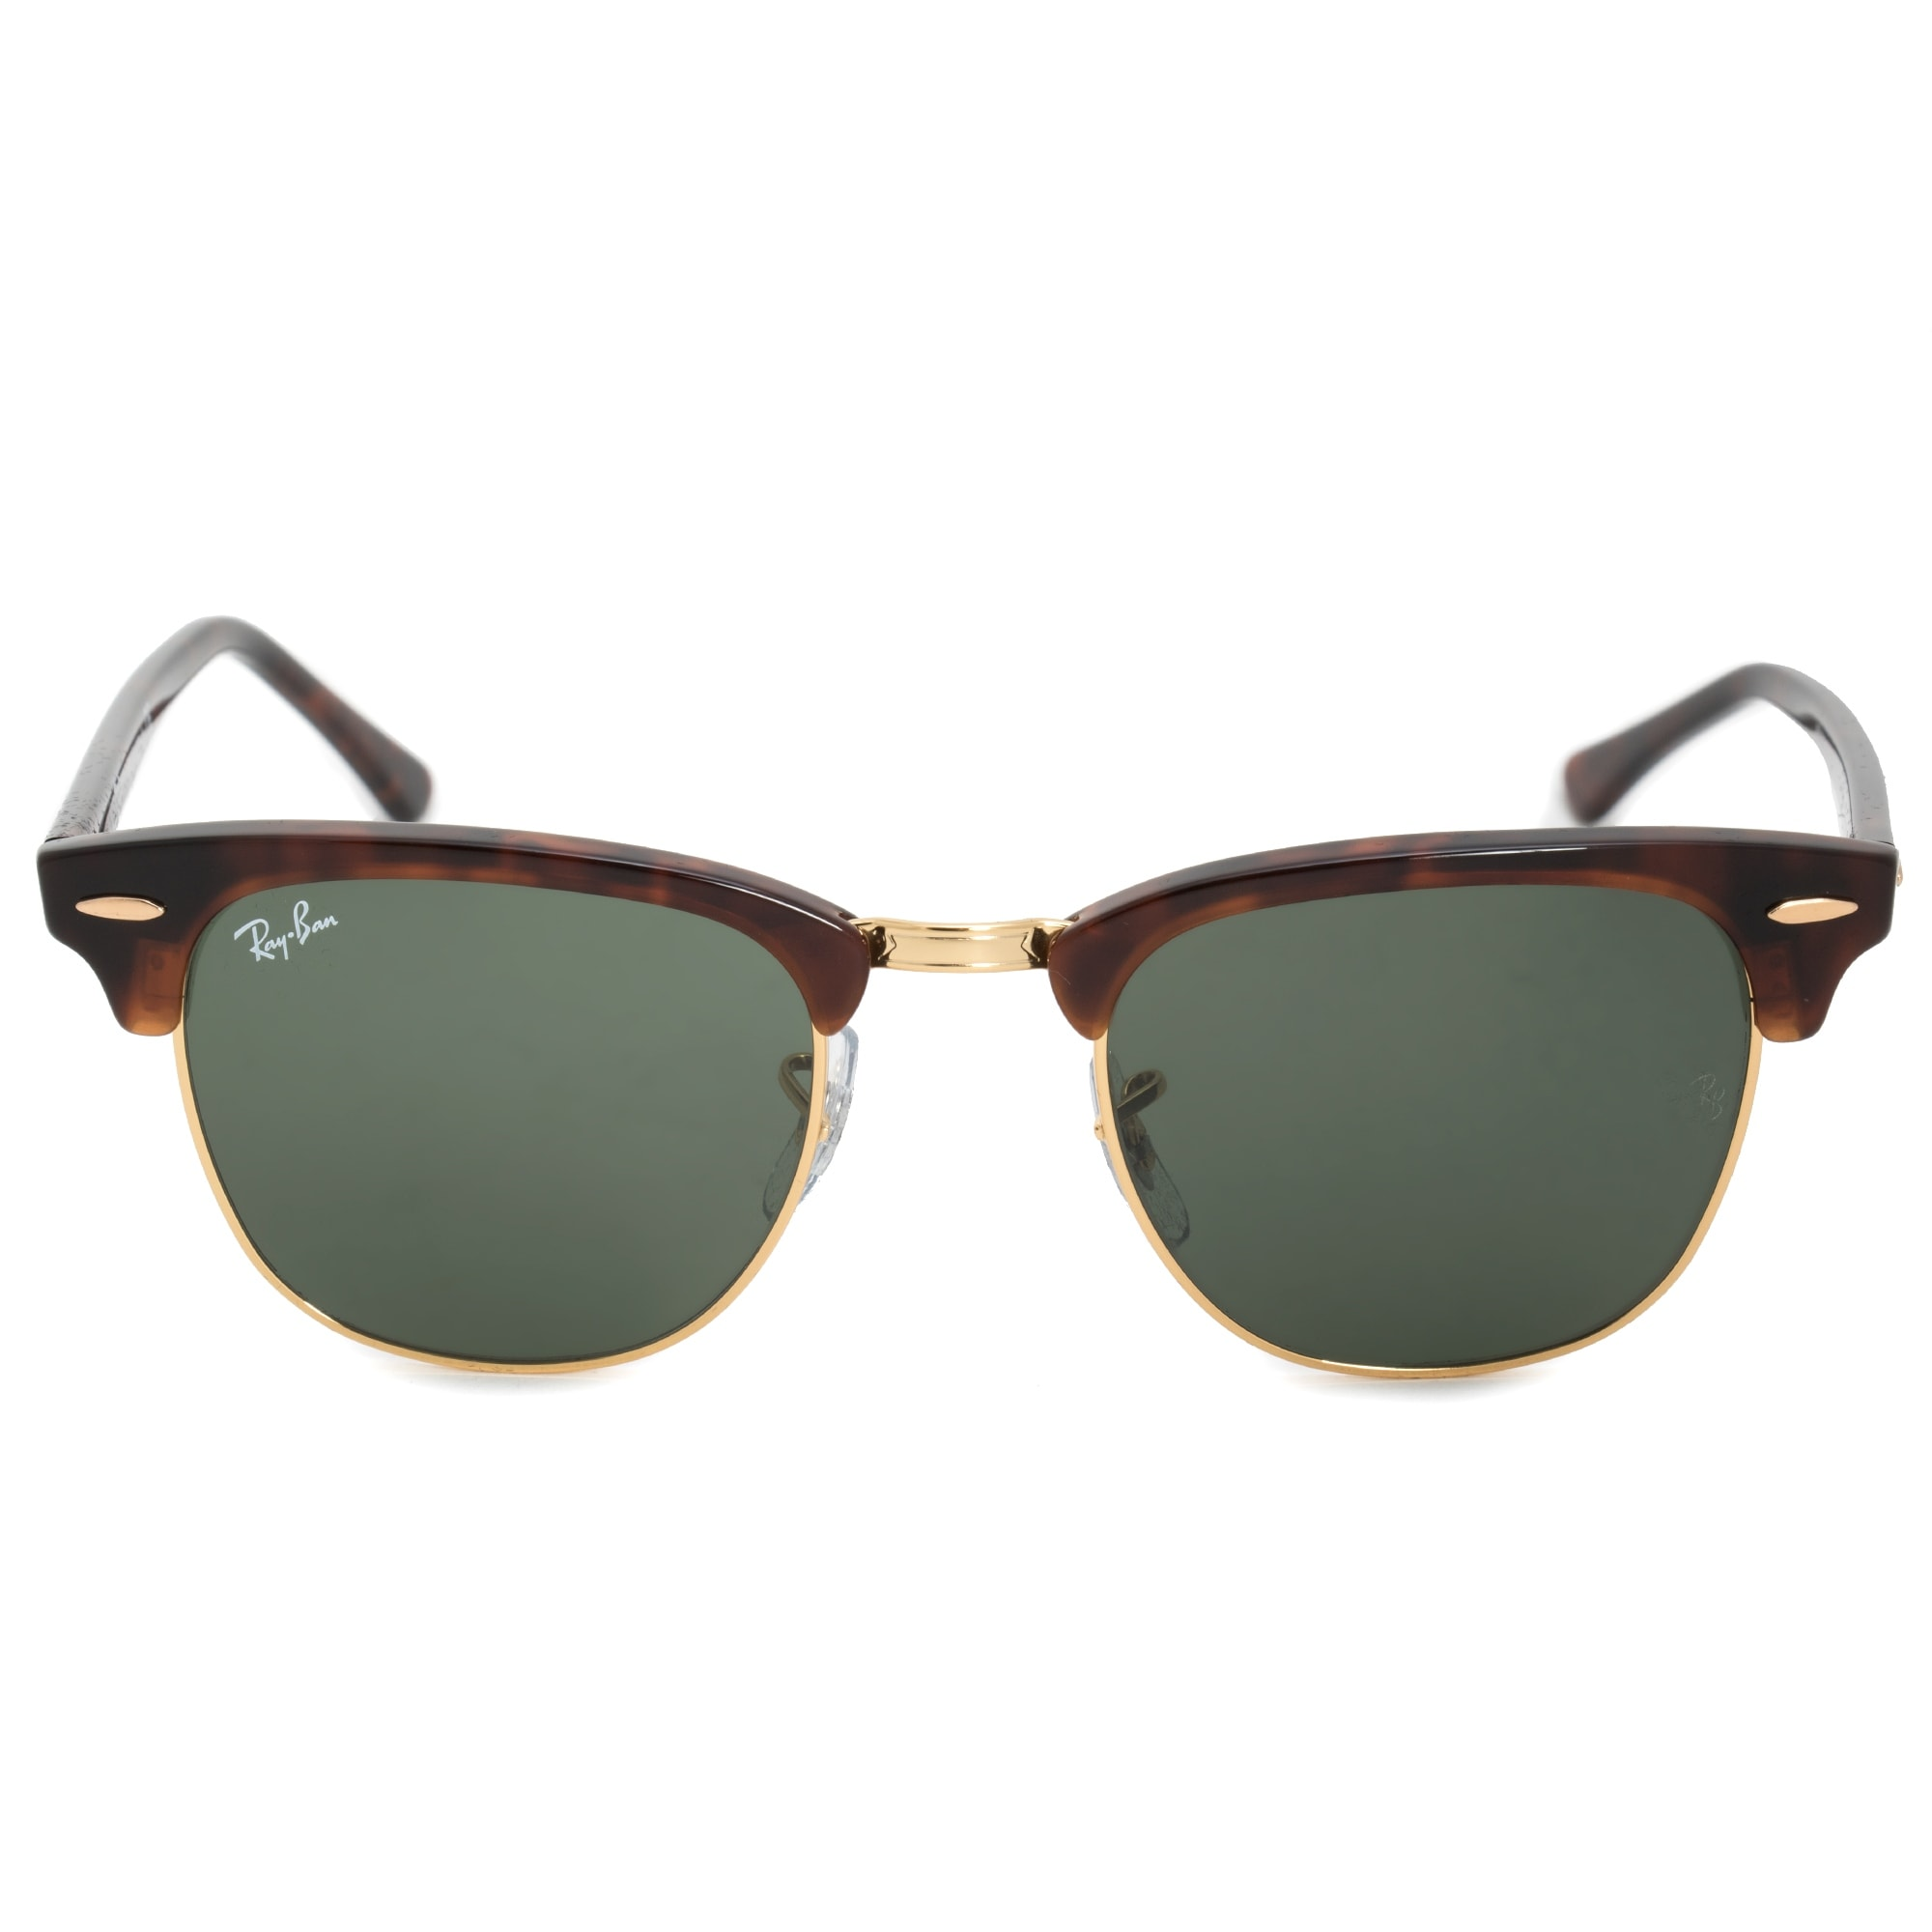 b18e336e759 Buy Ray-Ban Fashion Sunglasses Online at Overstock